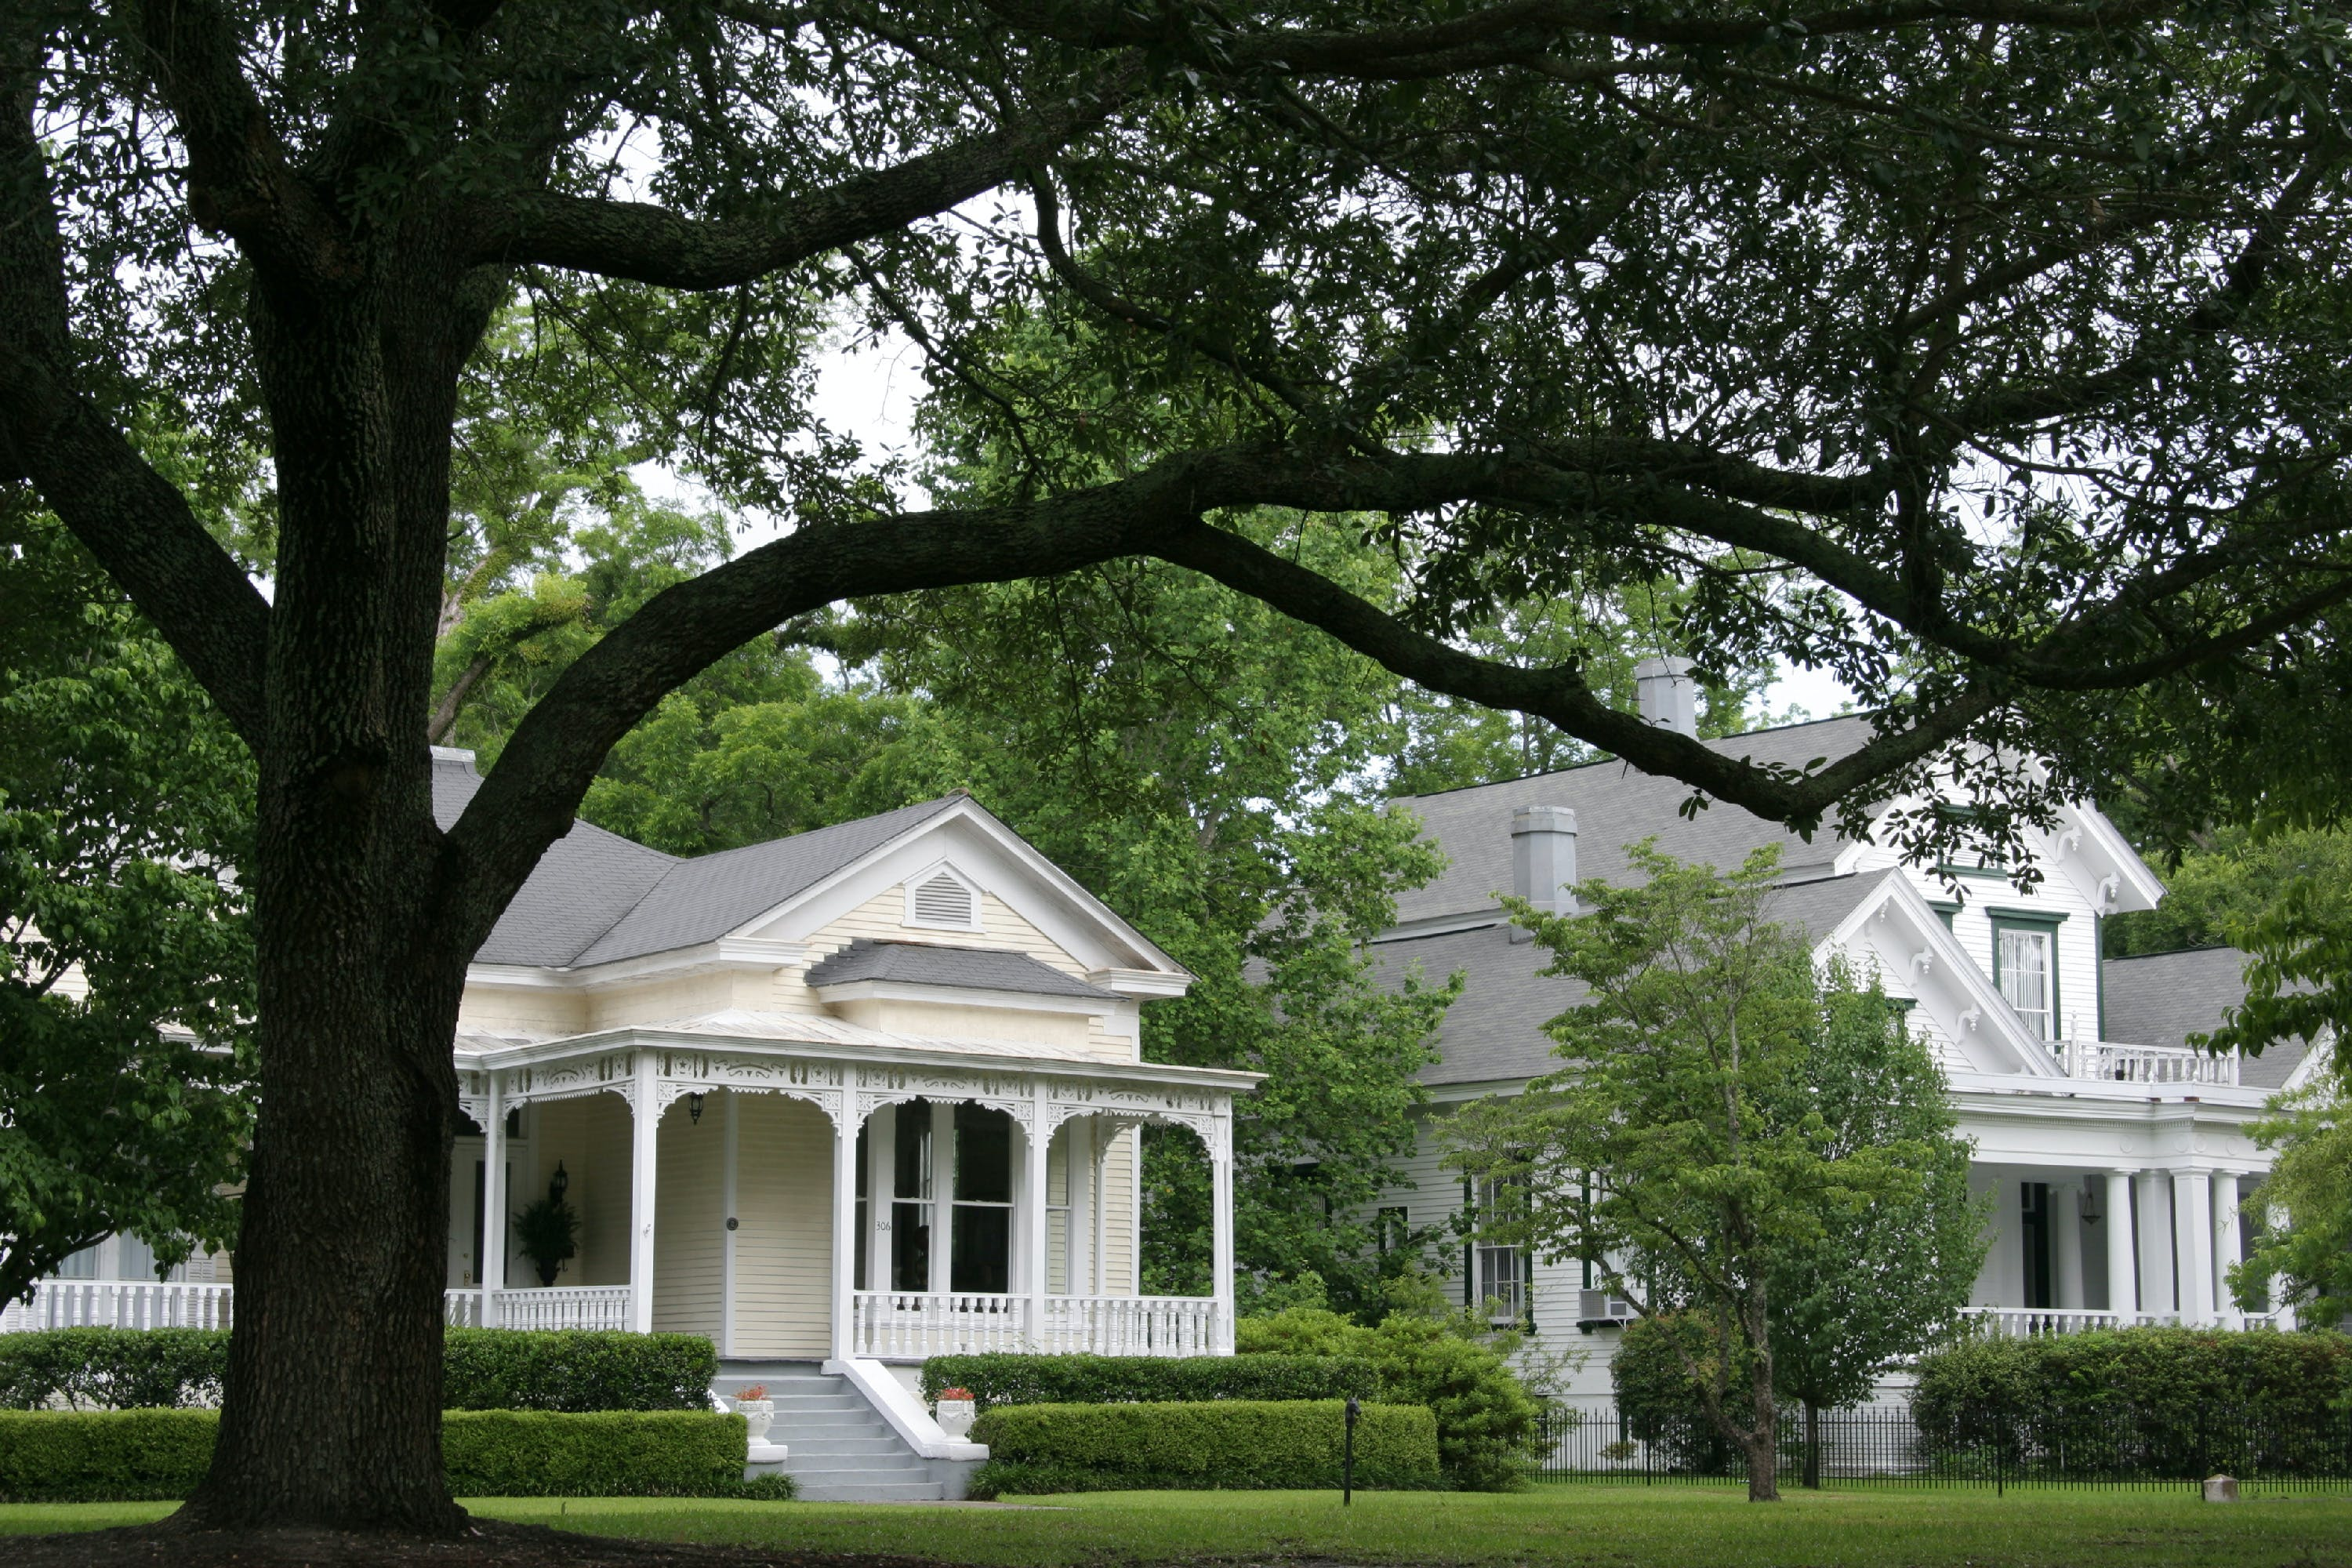 Historic homes along the Walking Tour on Randolph Street. (Photo by: Jeffrey Greenberg/UIG via Getty Images)